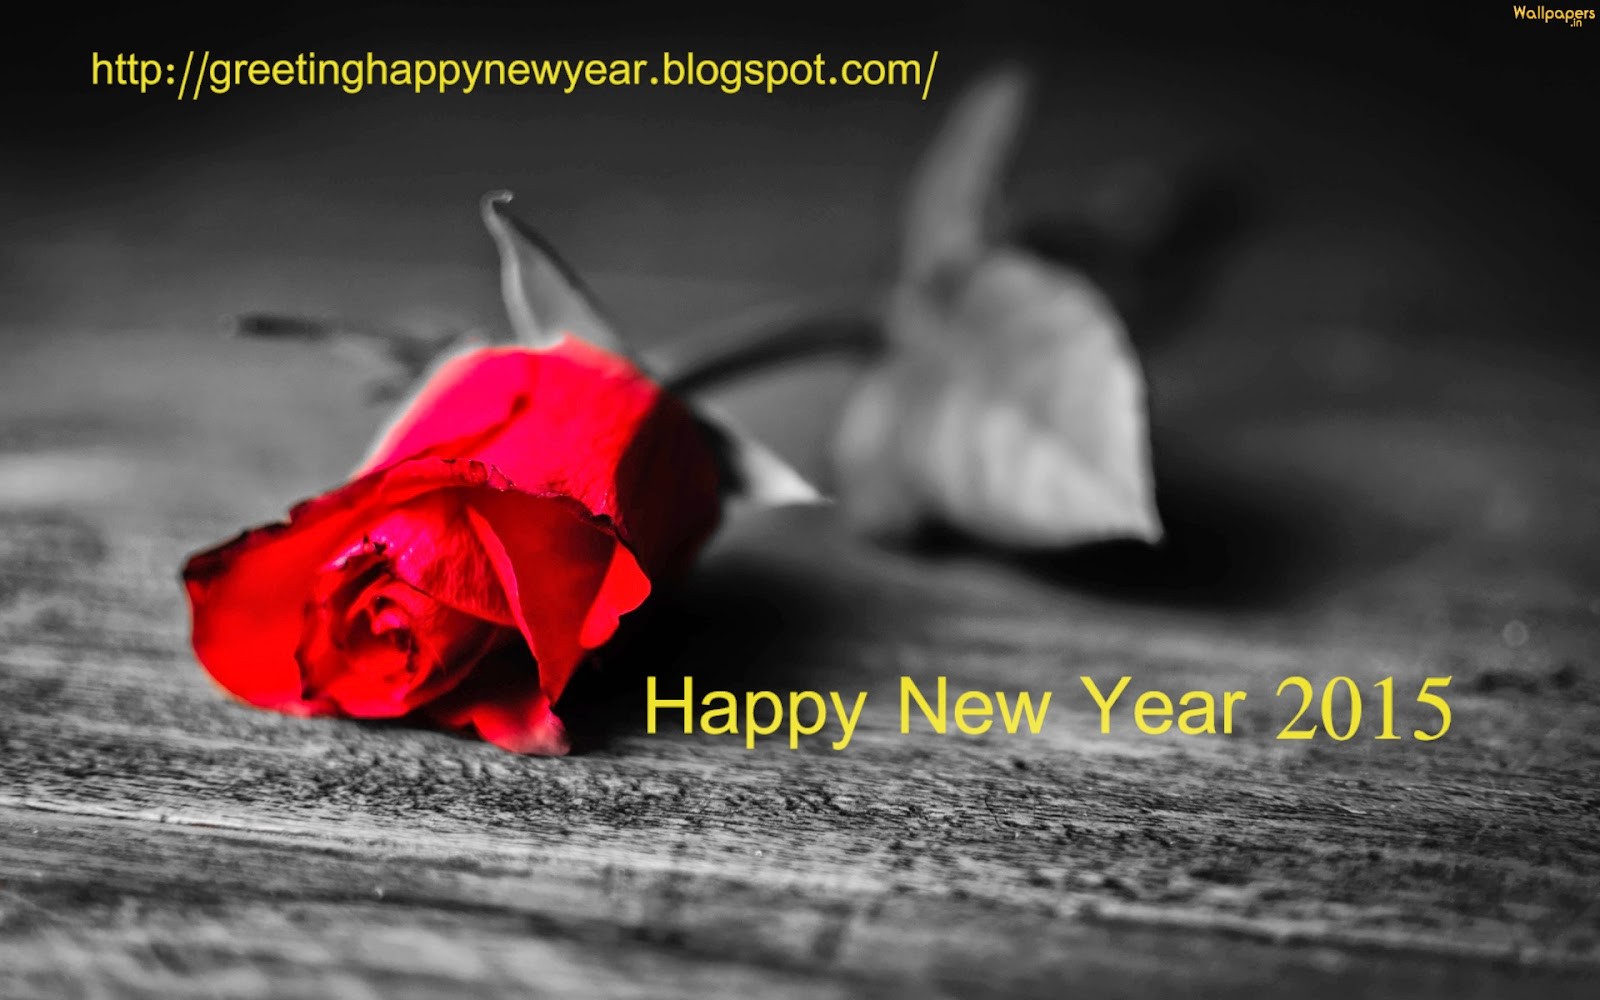 HAPPY NEW YEAR 2015 ROSE HD WALLPAPER - NEW LATEST WALLPAPER